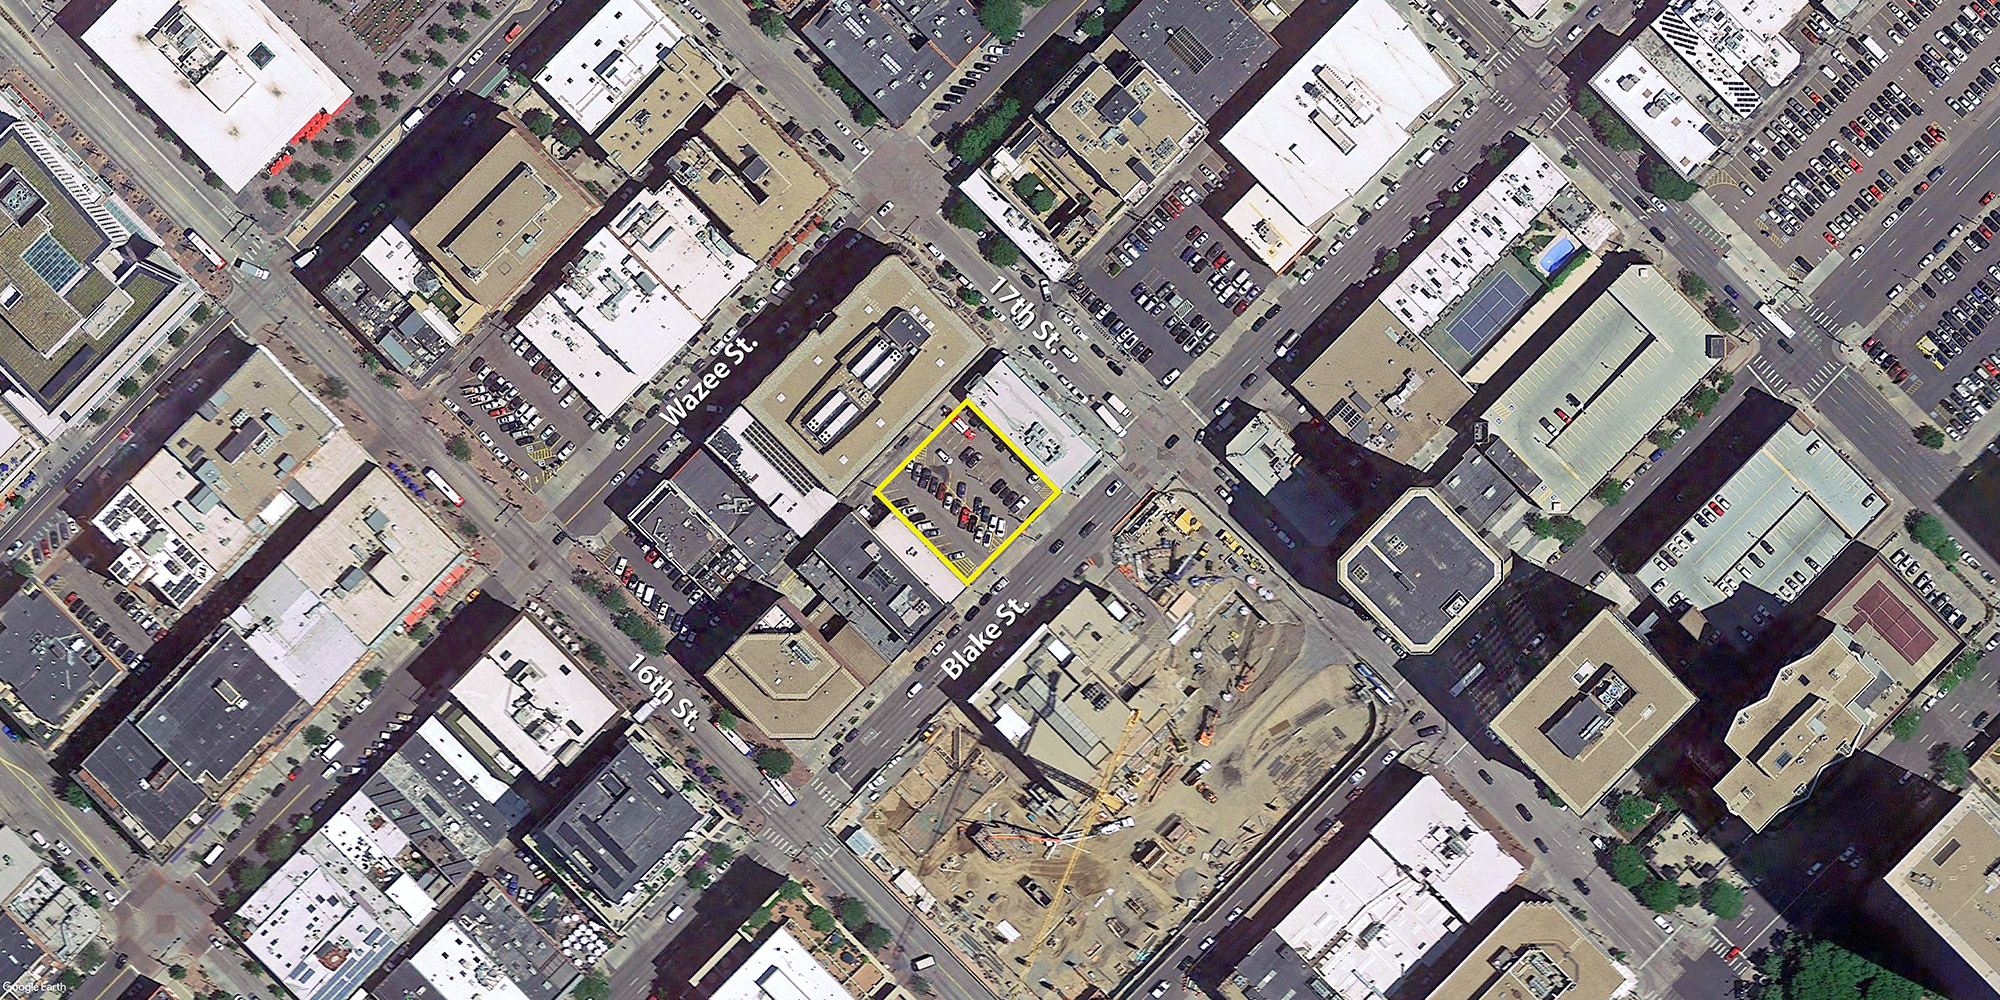 Site location for the proposed 1637 Blake Hotel, aerial image courtesy of Google Earth